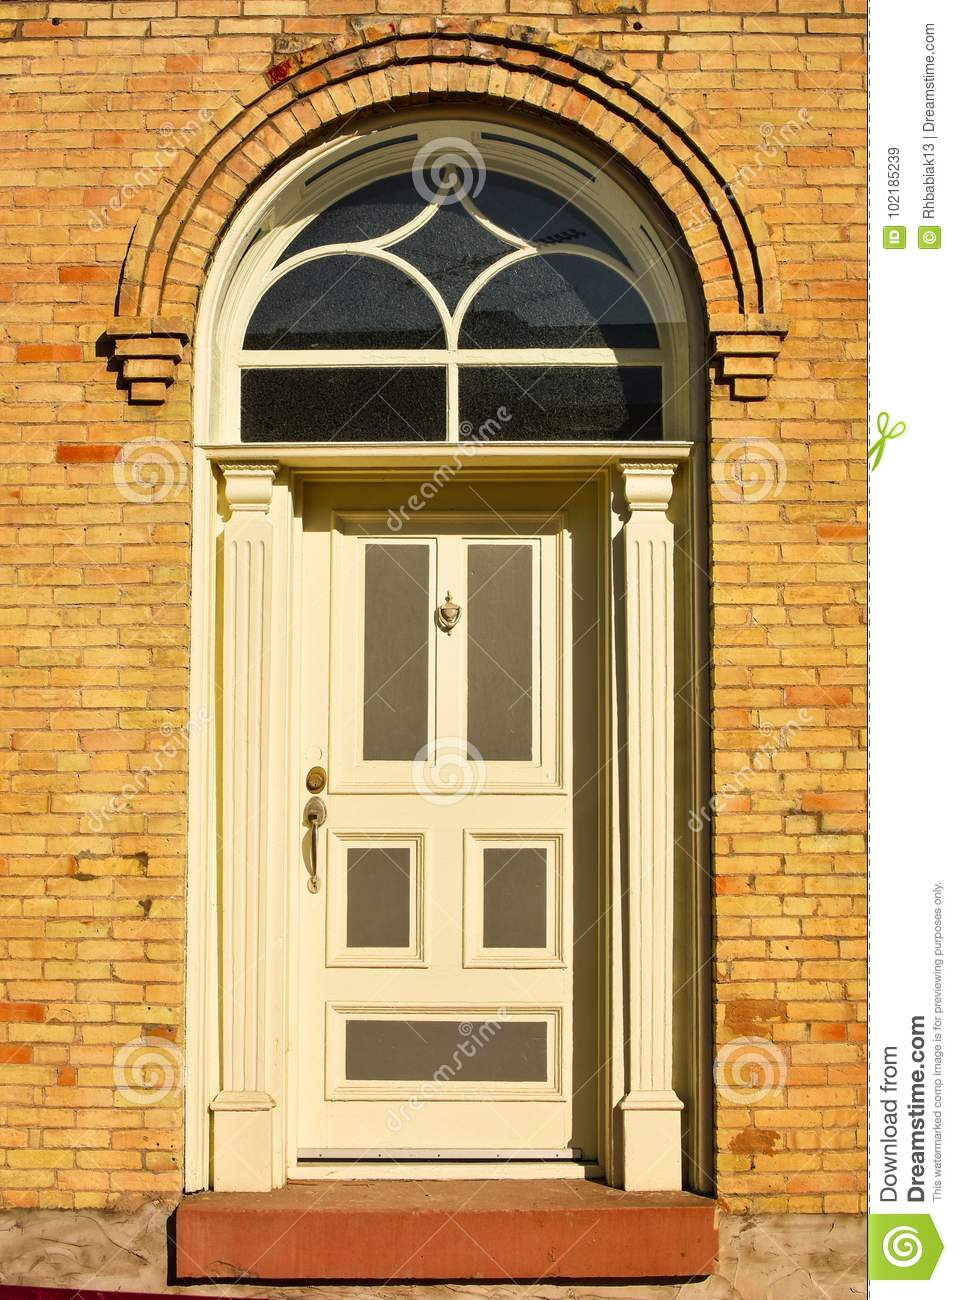 Exceptionnel A White Door In An Old Arched, Brick Doorway Frame In An Old Building With  An Arched Window Above The Door.